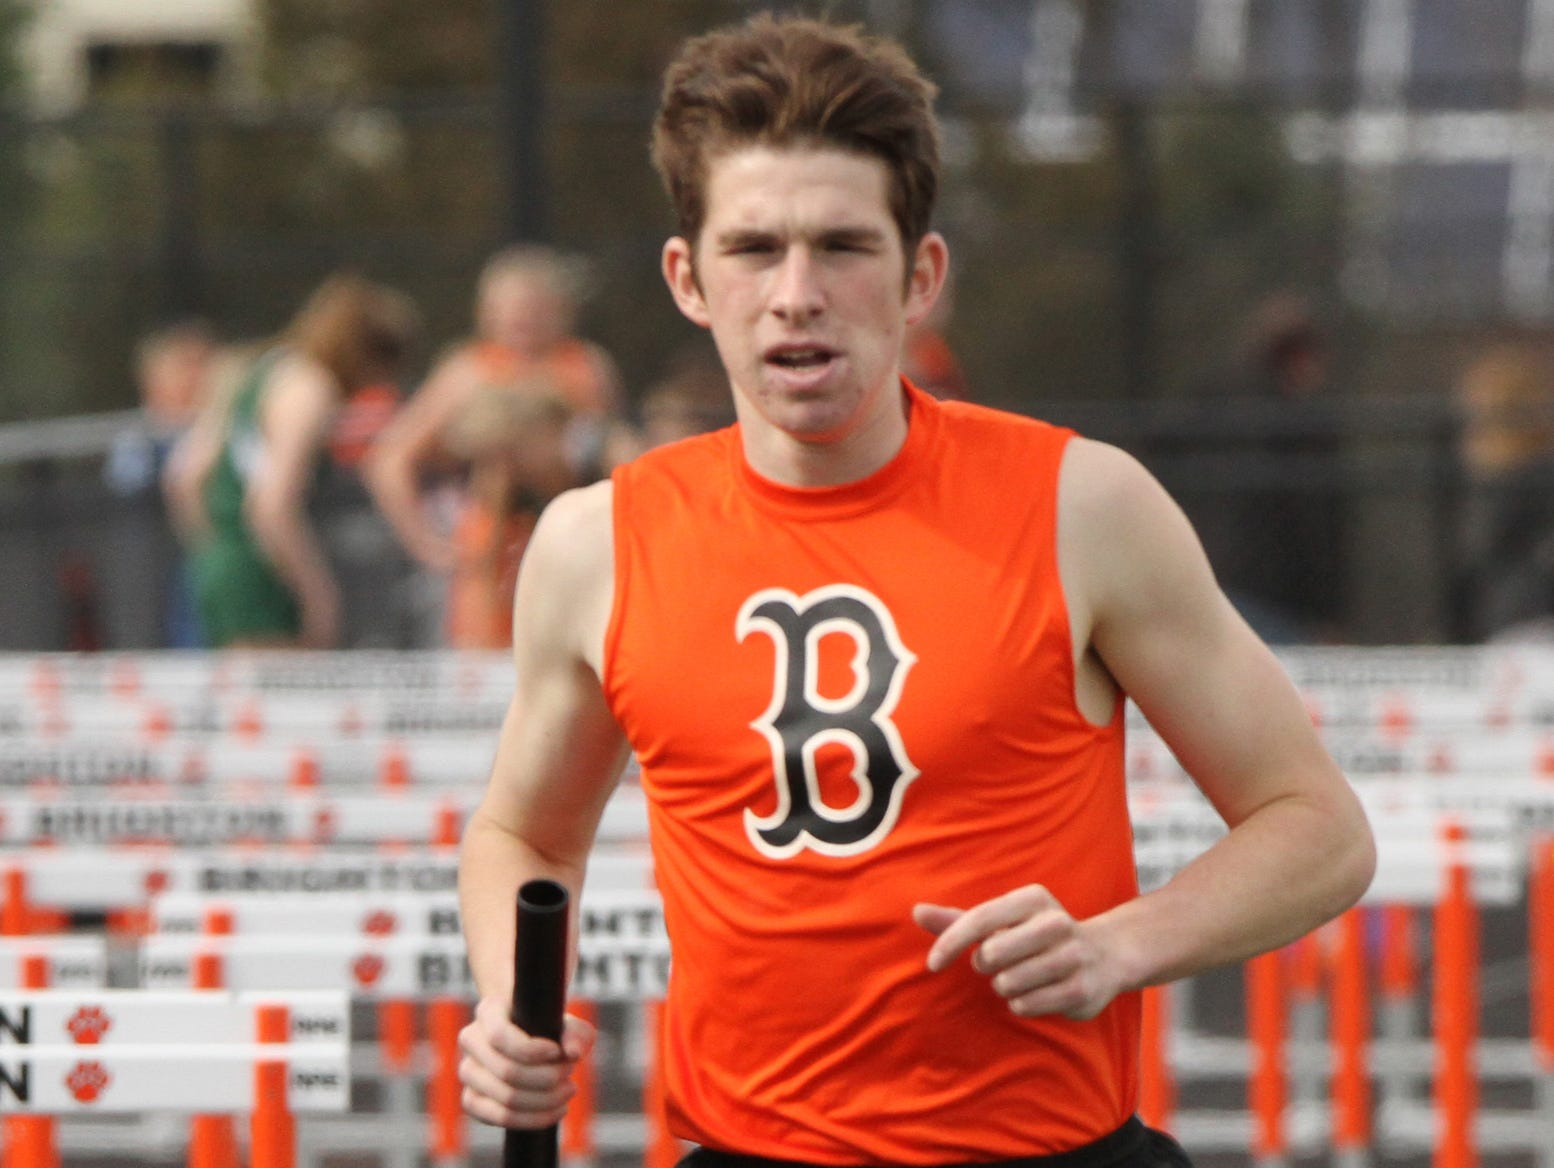 Brighton's Garrett McPeek completes the Brighton win in 3200 relay against Howell on Tuesday.